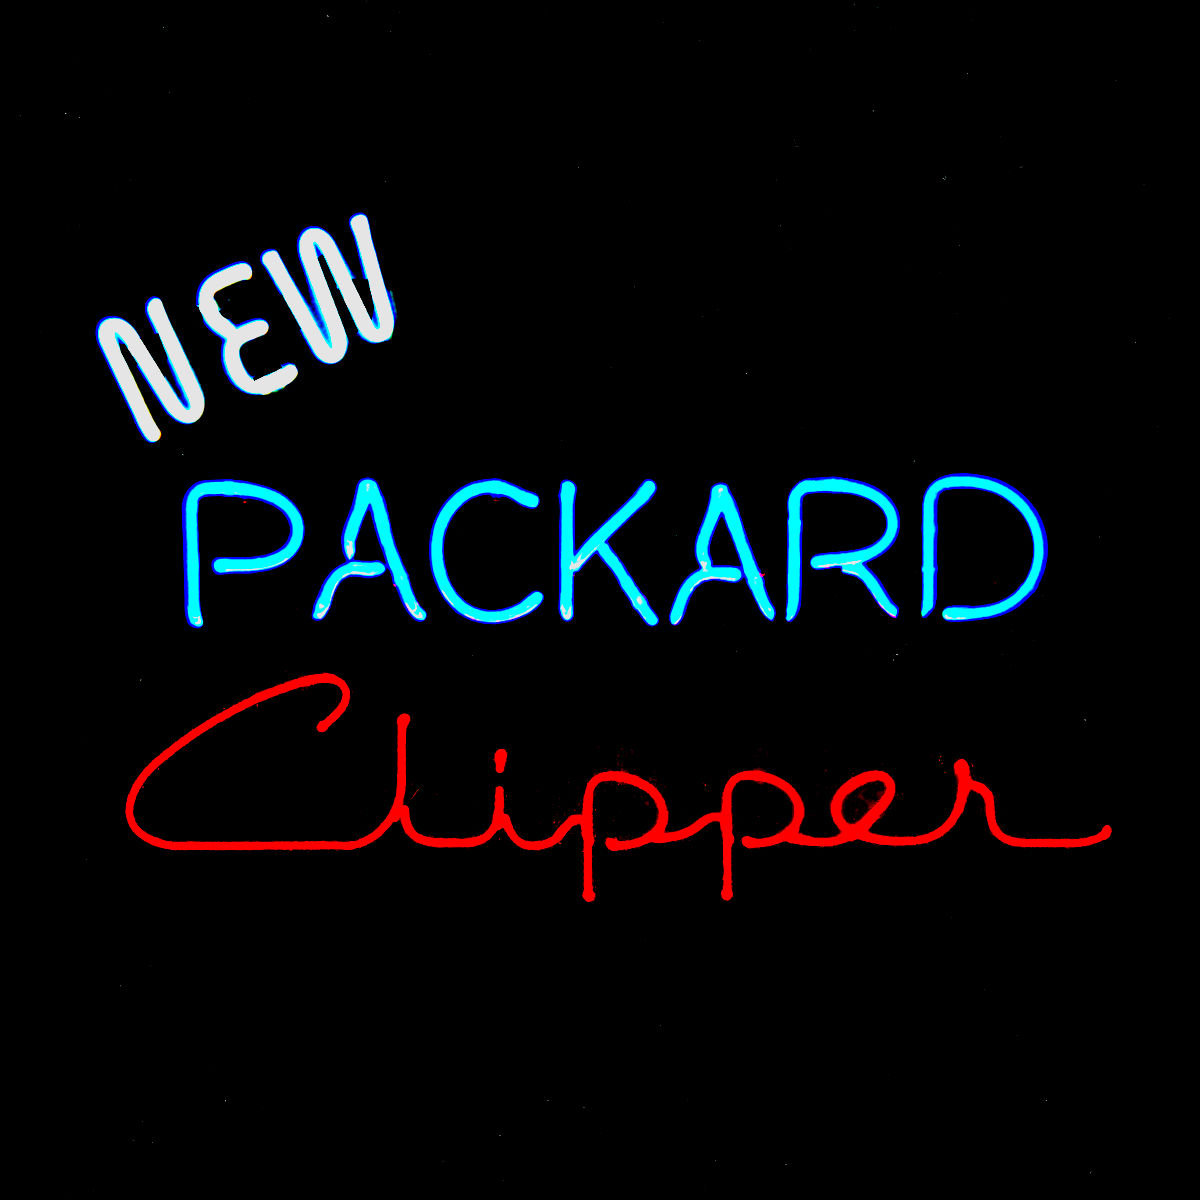 resized New Packard Clipper.jpg